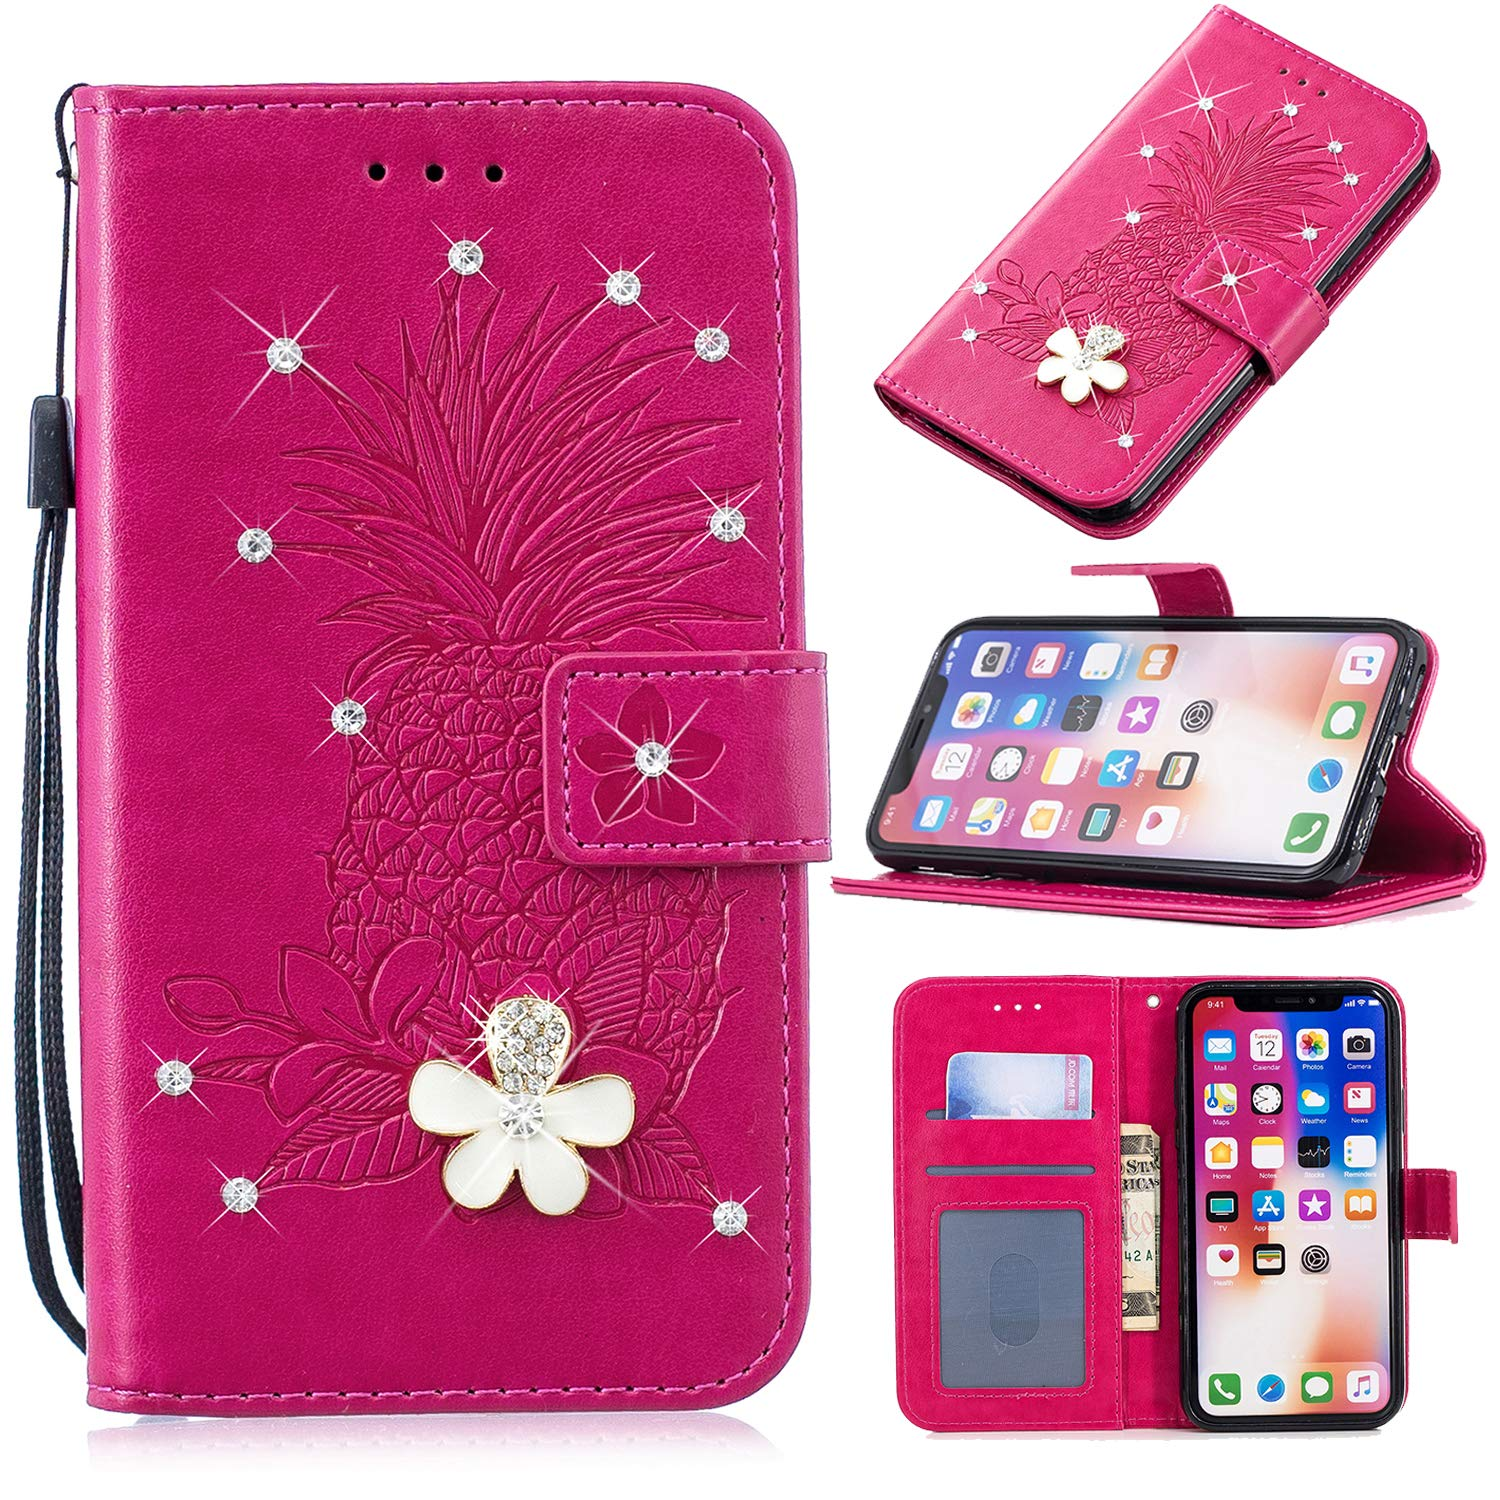 3D Crystal Flower Wallet Case for Samsung Galaxy S8,Aoucase Cute Pinapple Painted Diamond Magnetic Strap PU Leather Card Slot Shockproof Flip Stand Case with Black Dual-use Stylus,Hot Pink by Aoucase